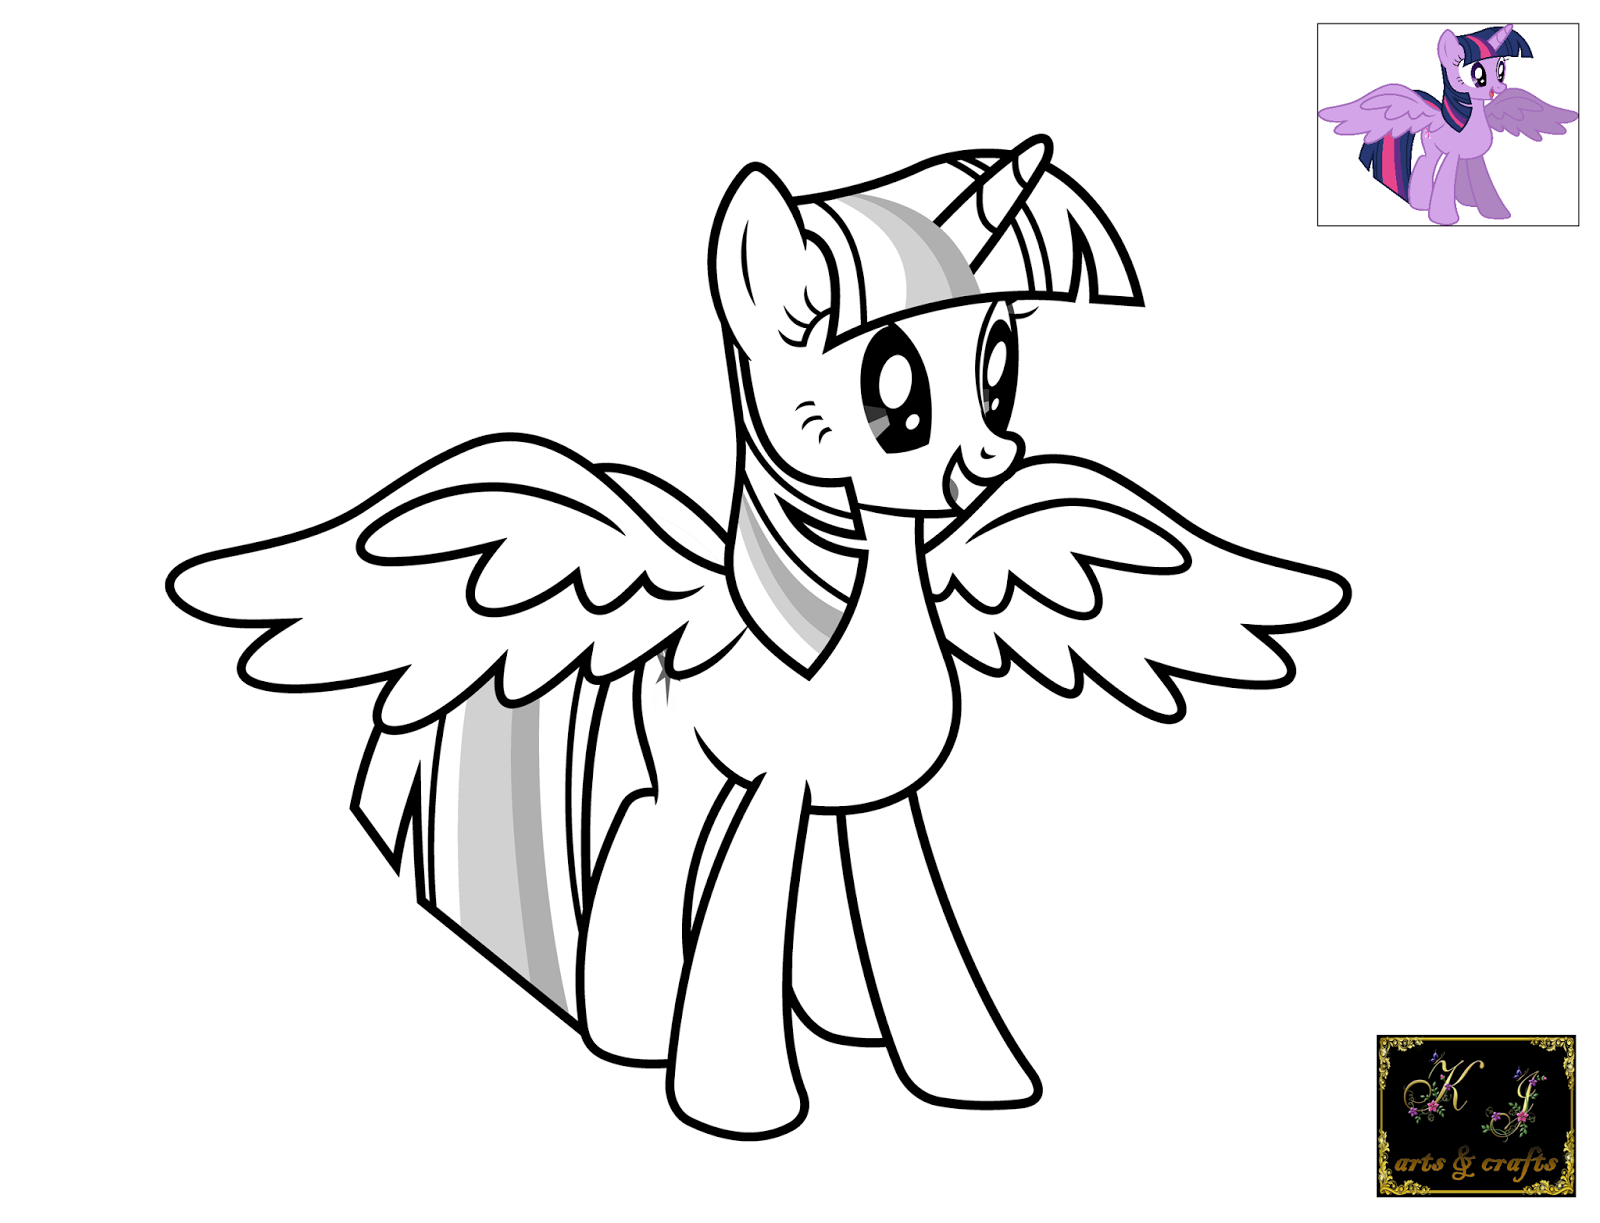 Adult Beauty Princess Twilight Sparkle Coloring Page Images beauty kj coloring pages twilight sparkle alicorn images